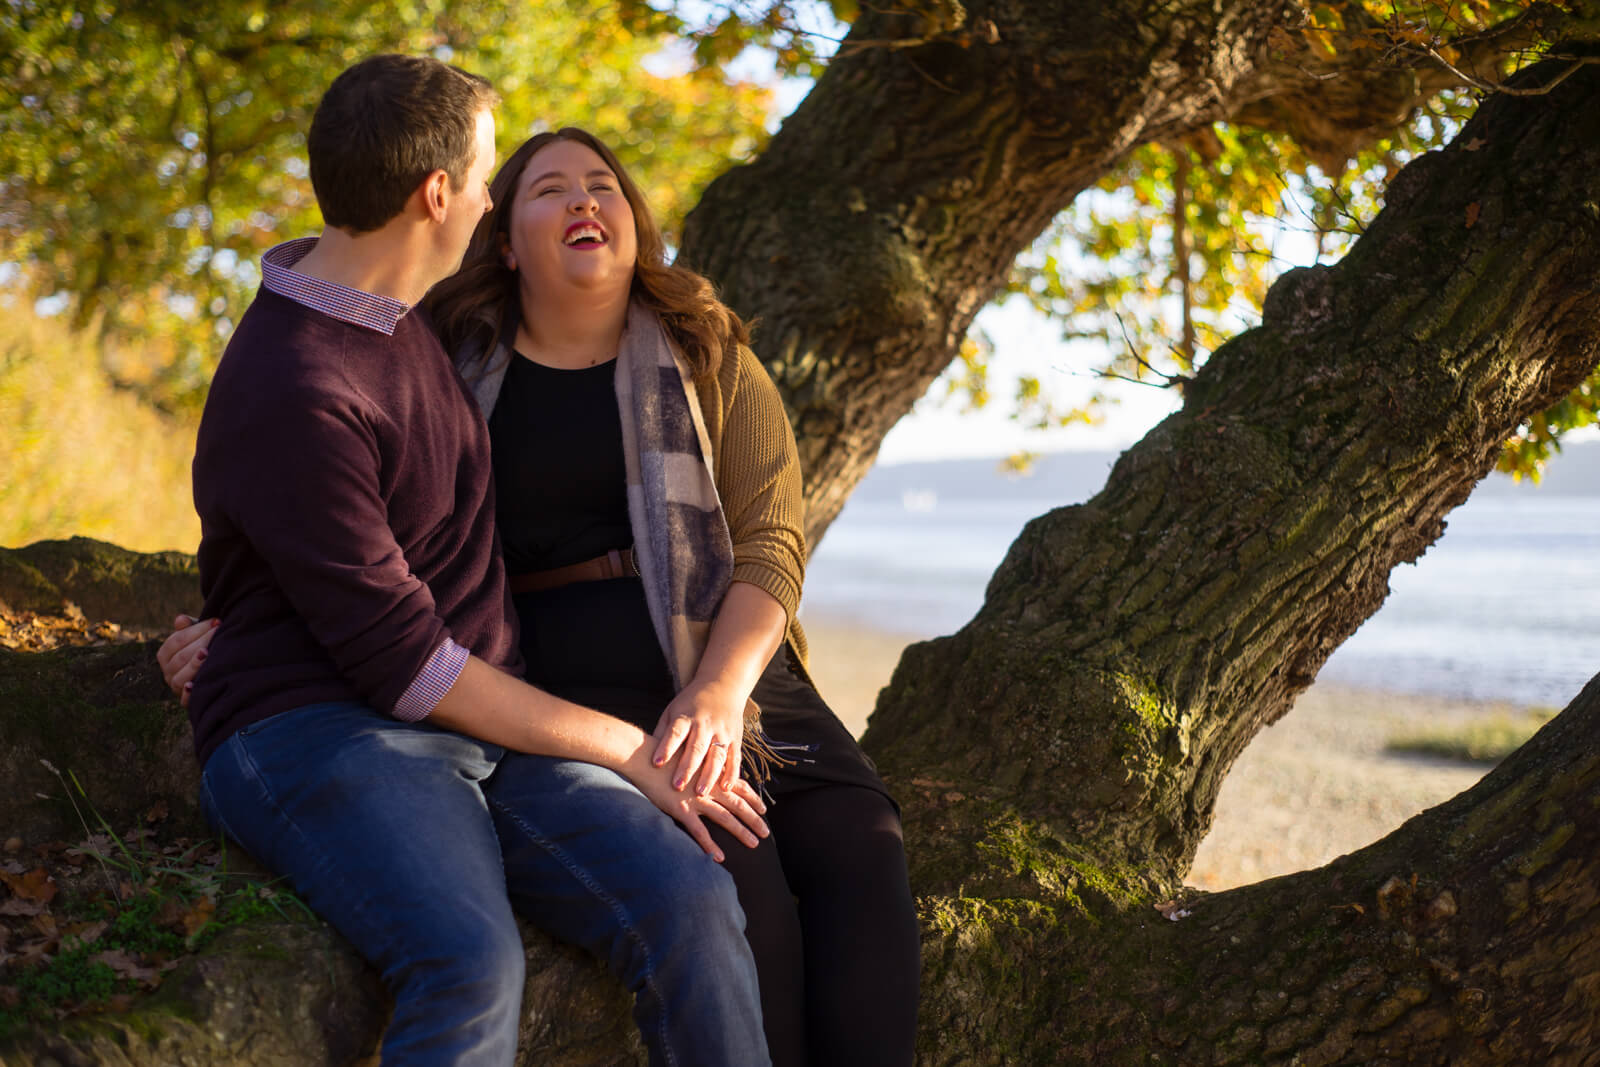 Engaged couple sitting in a low tree lauging by a beach